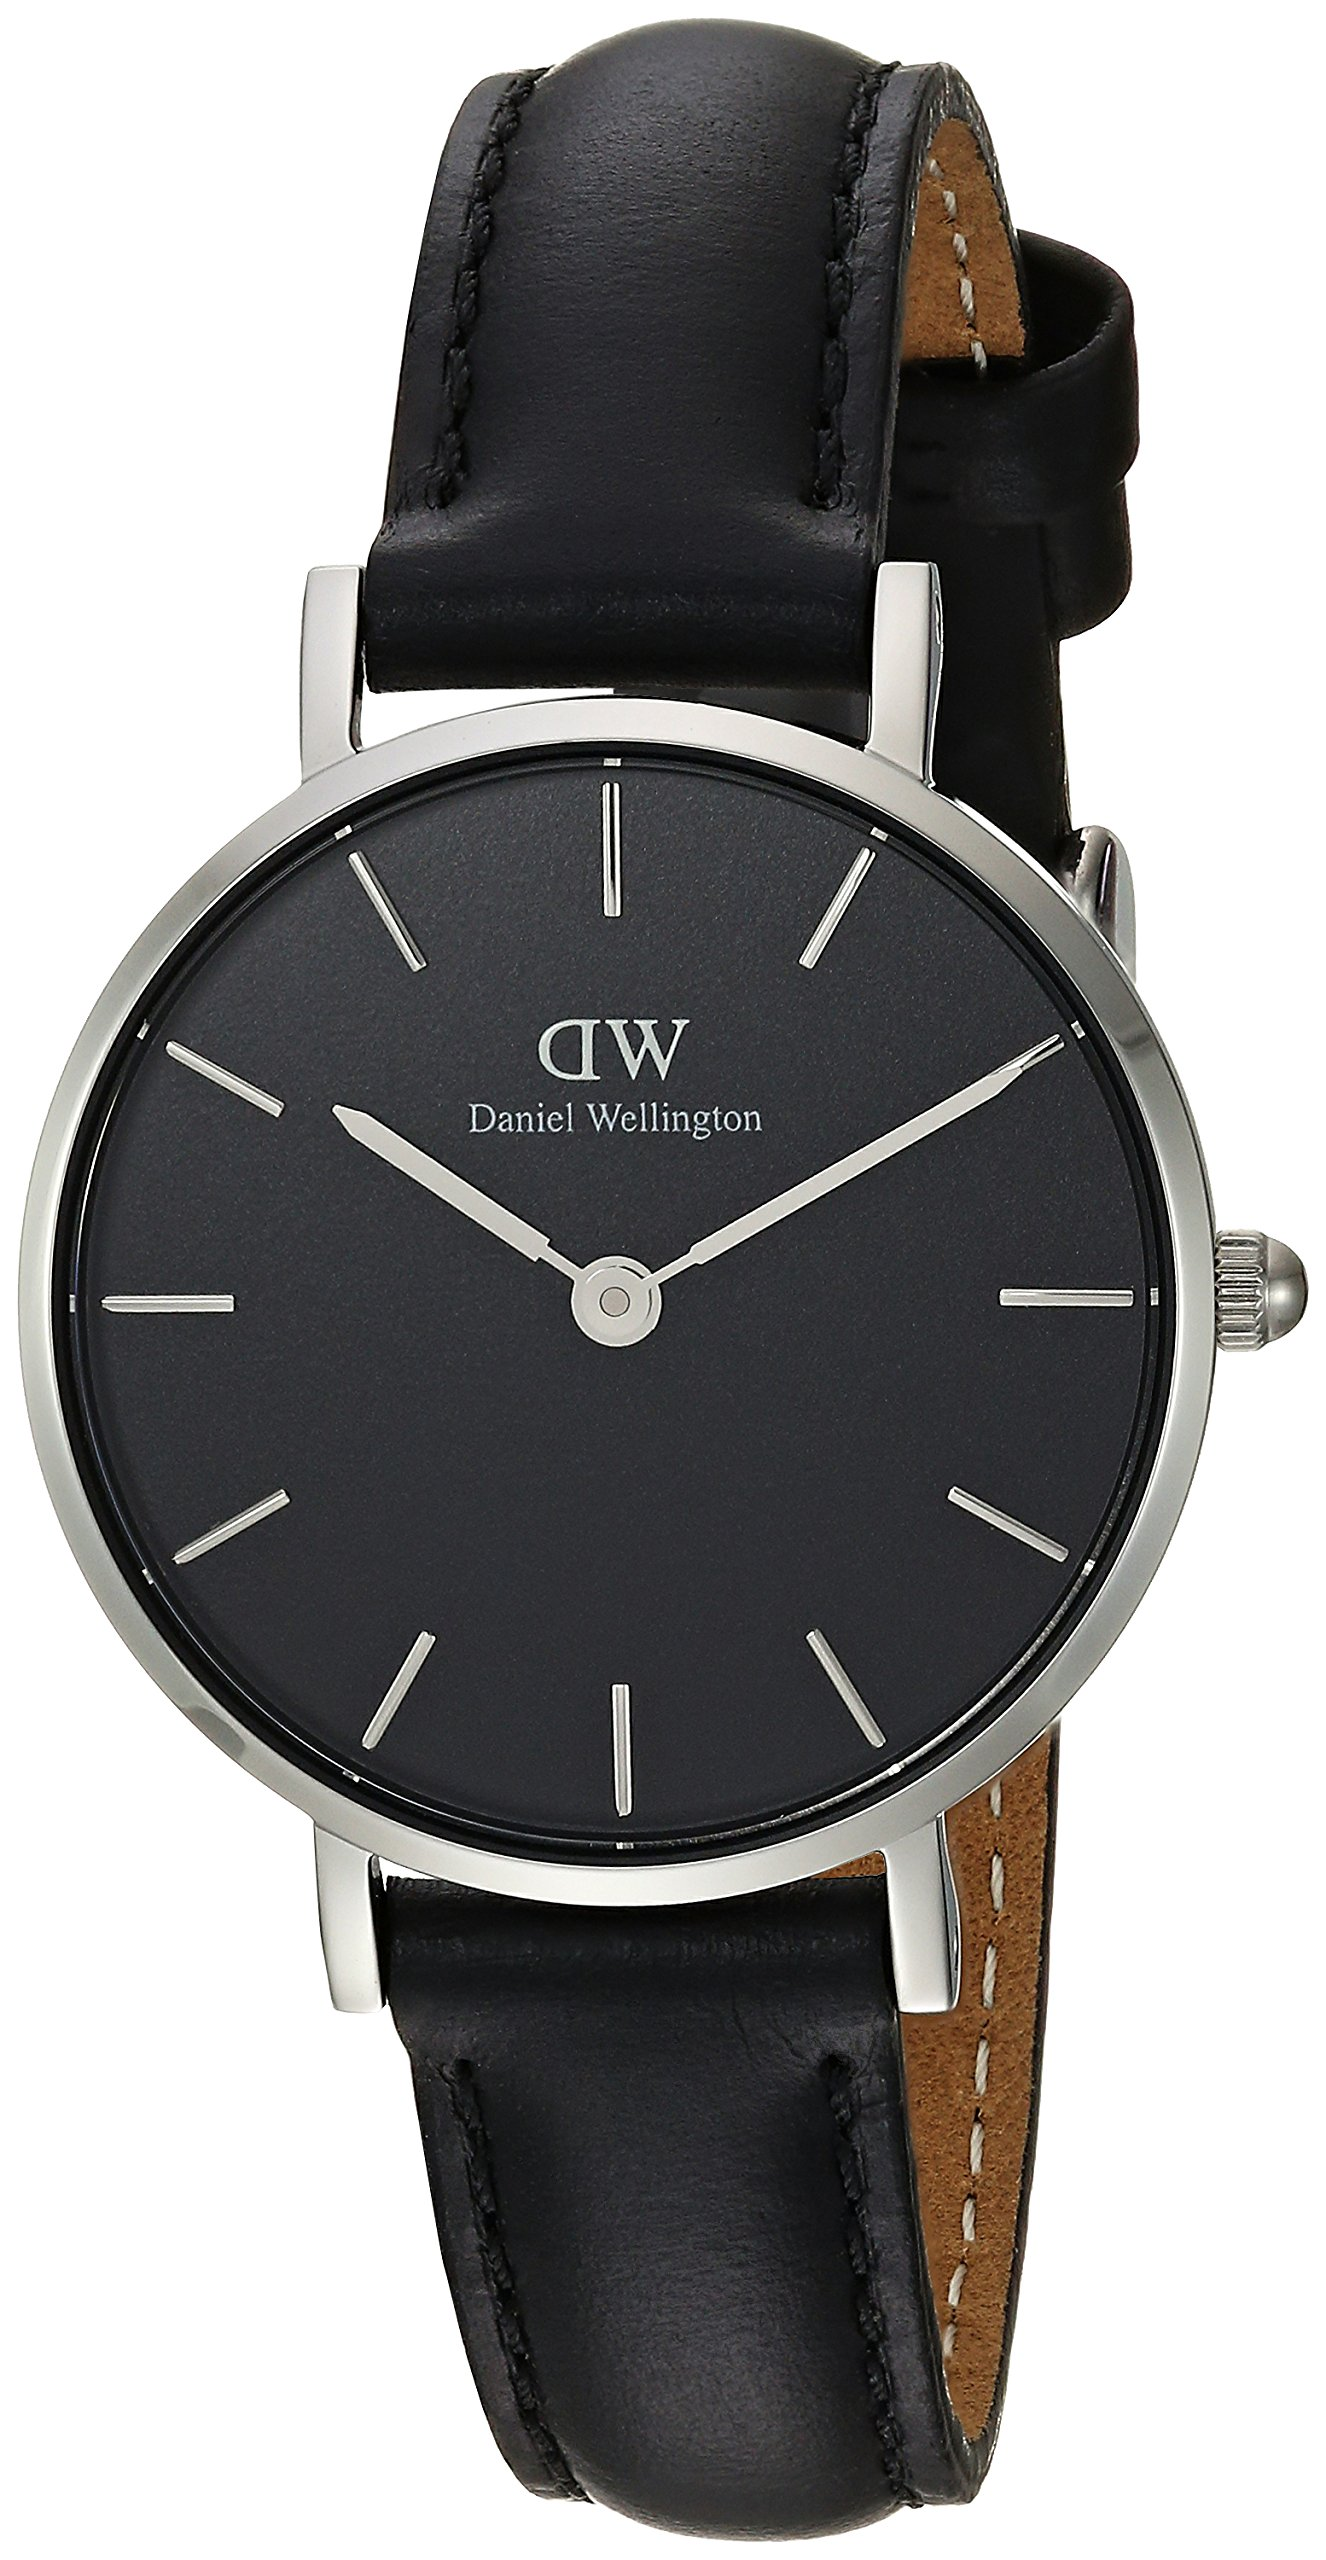 Daniel Wellington 'Classic Petite' Quartz Stainless Steel and Leather Casual Watch, Color:Black (Model: DW00100236) by Daniel Wellington